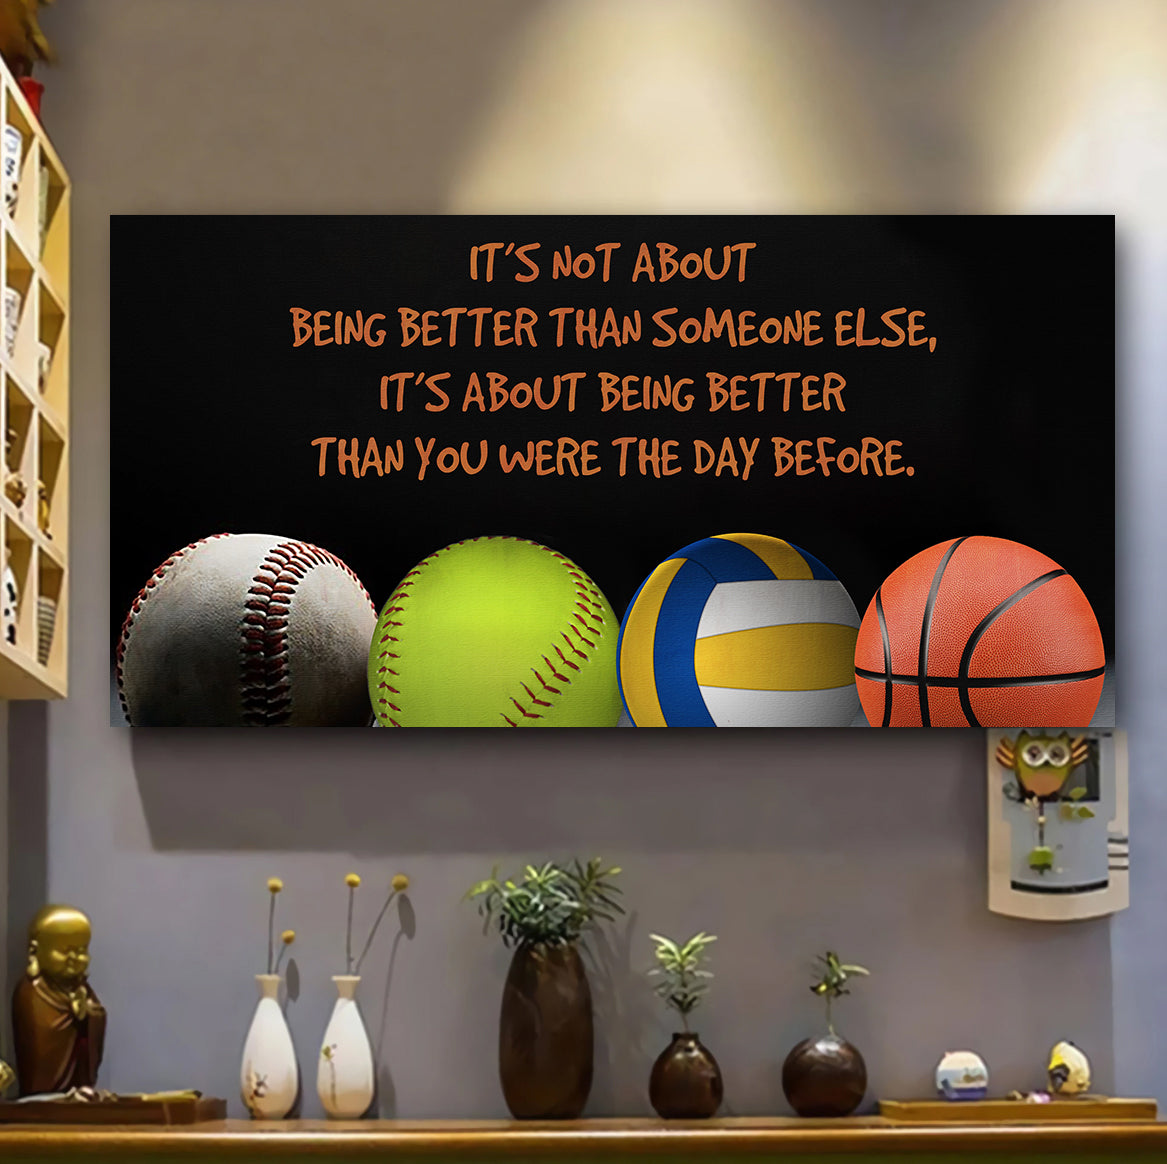 (LP323) Customizable Baseball-Softball-Basketball-Volleyball Poster, canvas – It's not about- FREE SHIPPING ON ORDERS OVER $75